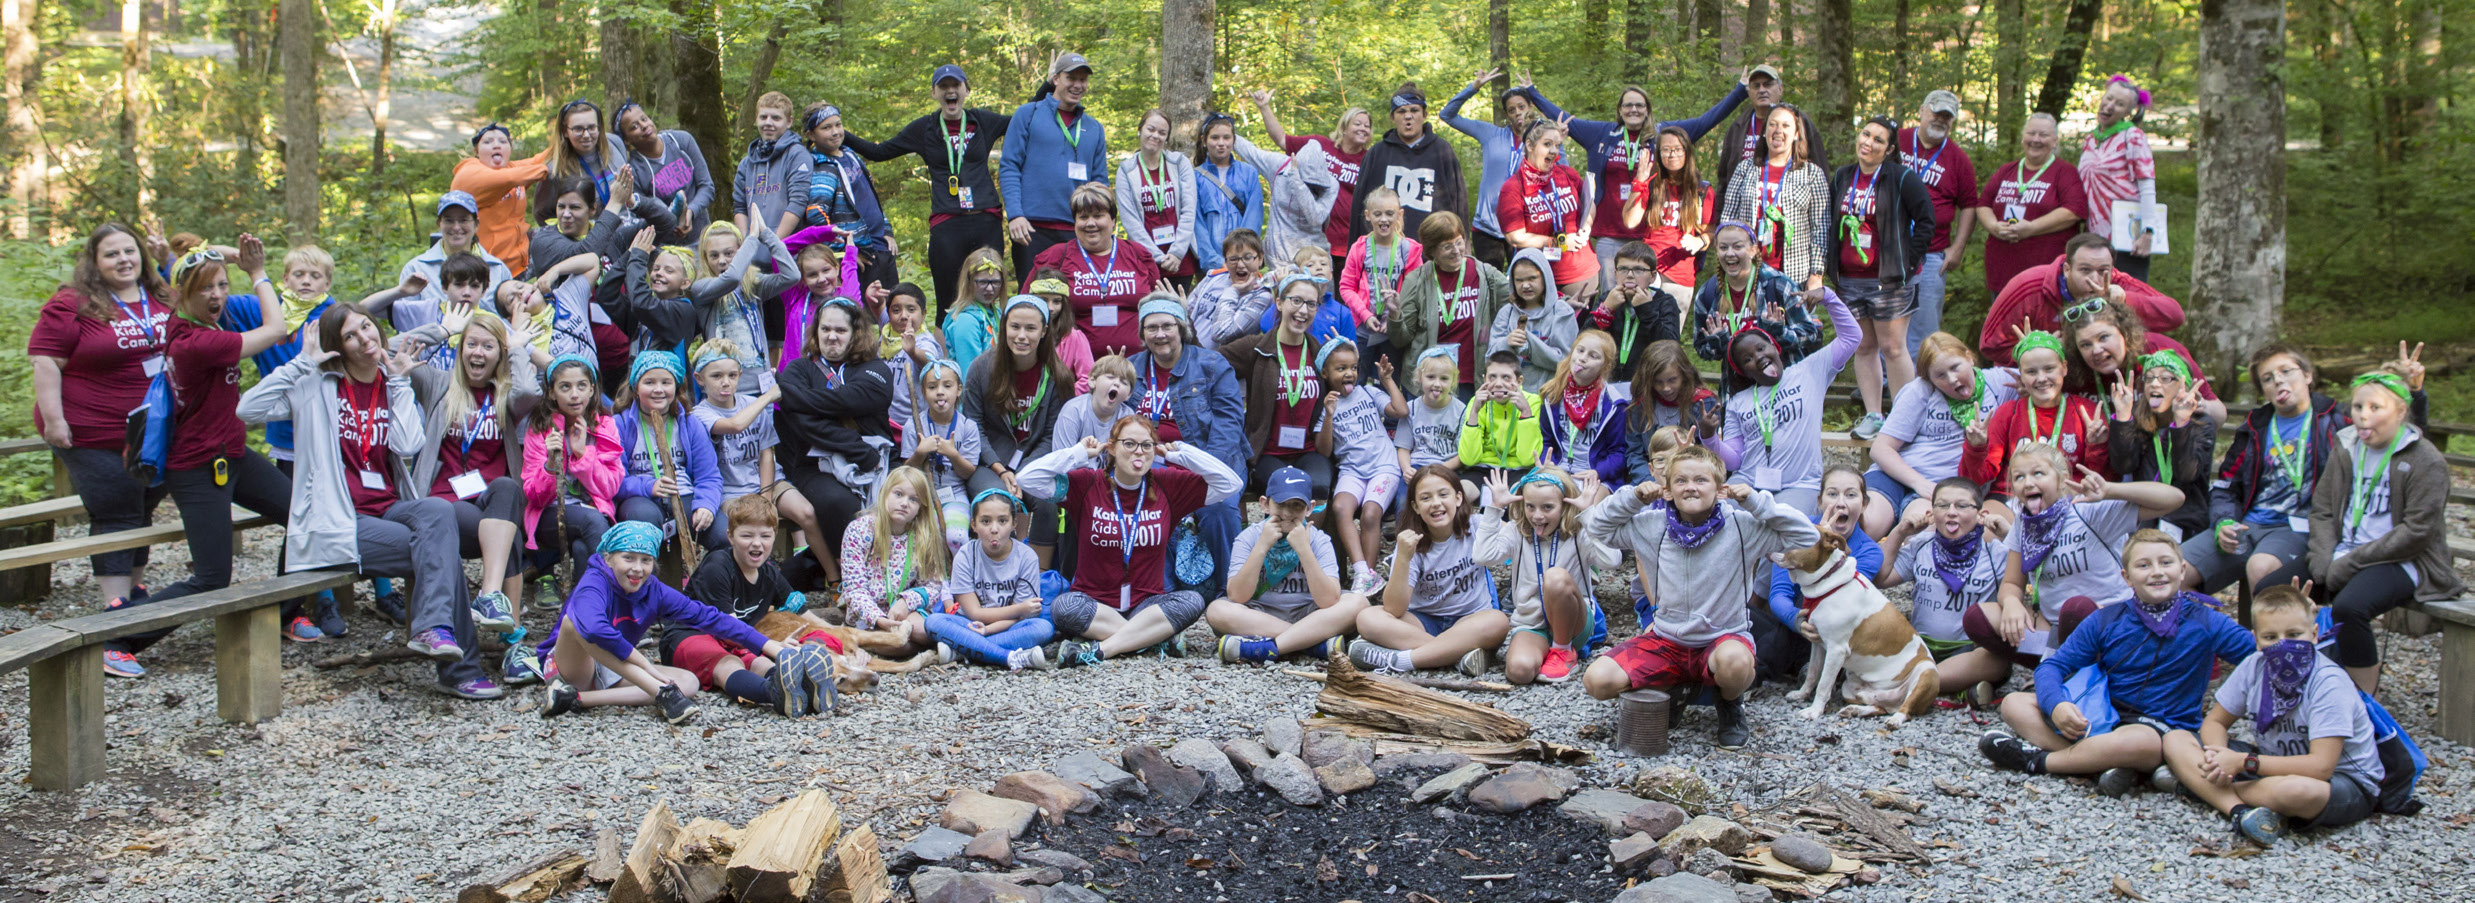 A past group of campers.